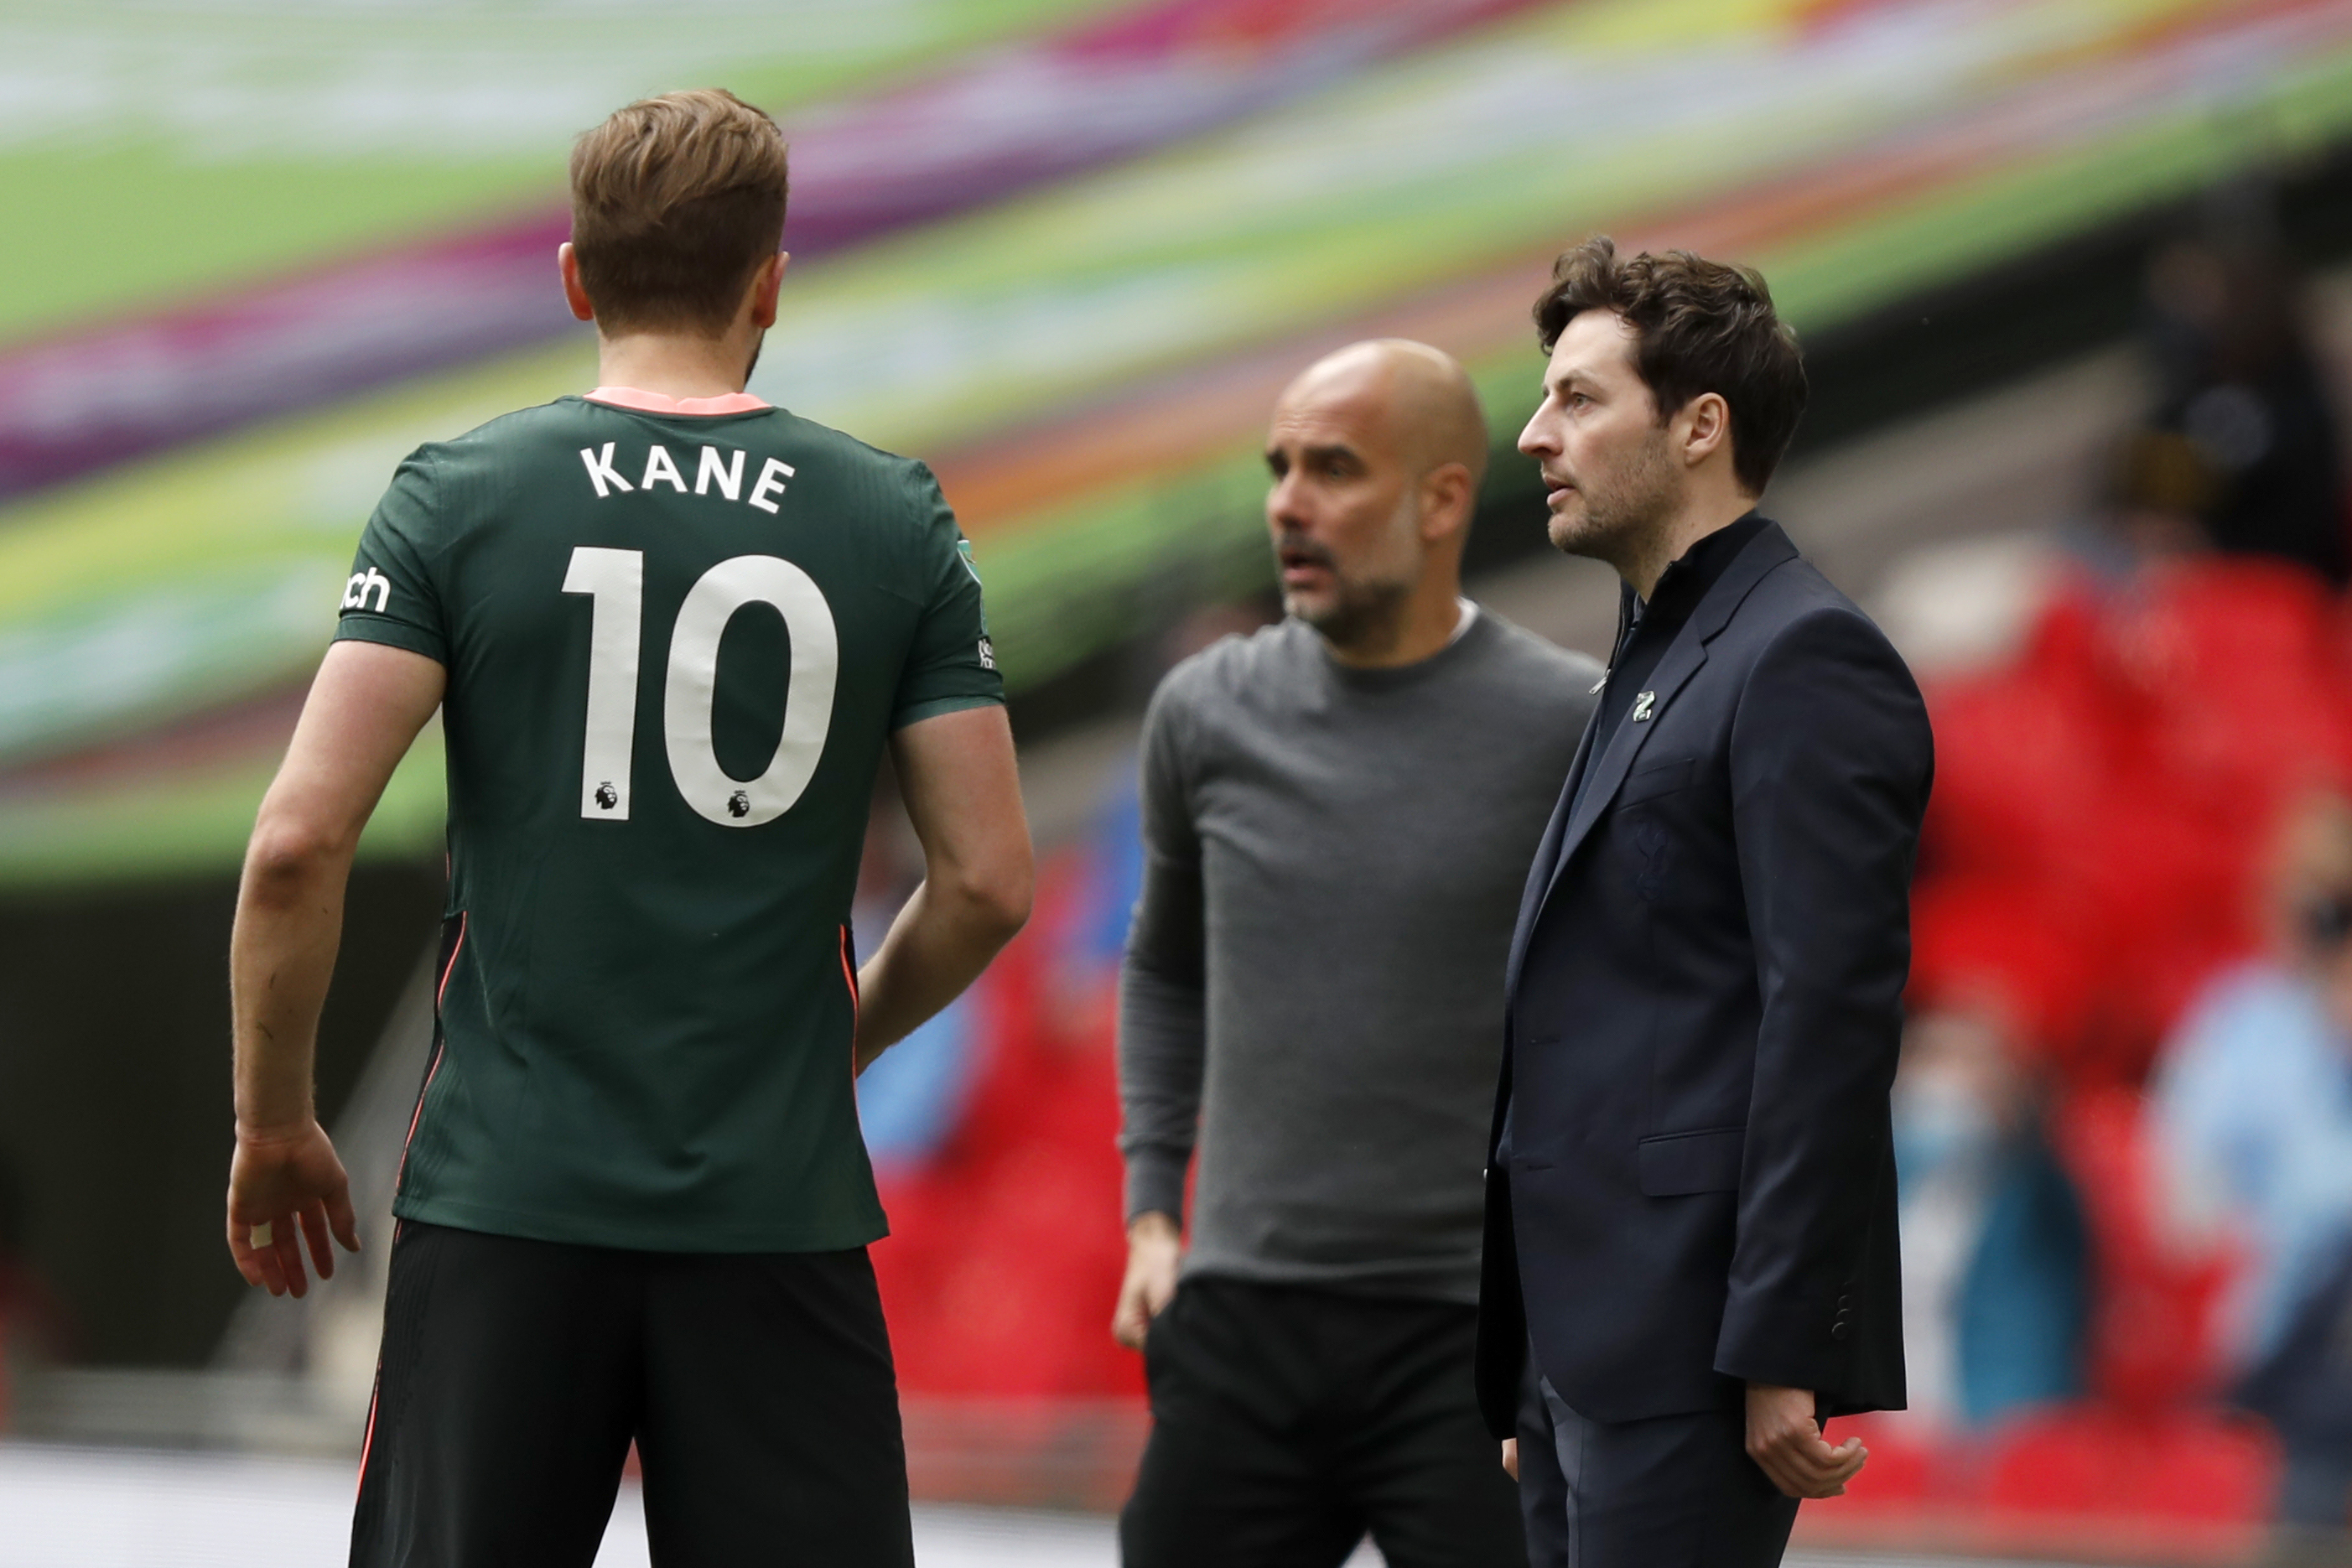 <p>Tottenham's interim head coach Ryan Mason talks to Tottenham's Harry Kane, with Manchester City's head coach Pep Guardiola in the background, during the English League Cup final soccer match between Manchester City and Tottenham Hotspur at Wembley stadium in London, Sunday, April 25, 2021. (AP Photo/Alastair Grant)</p>